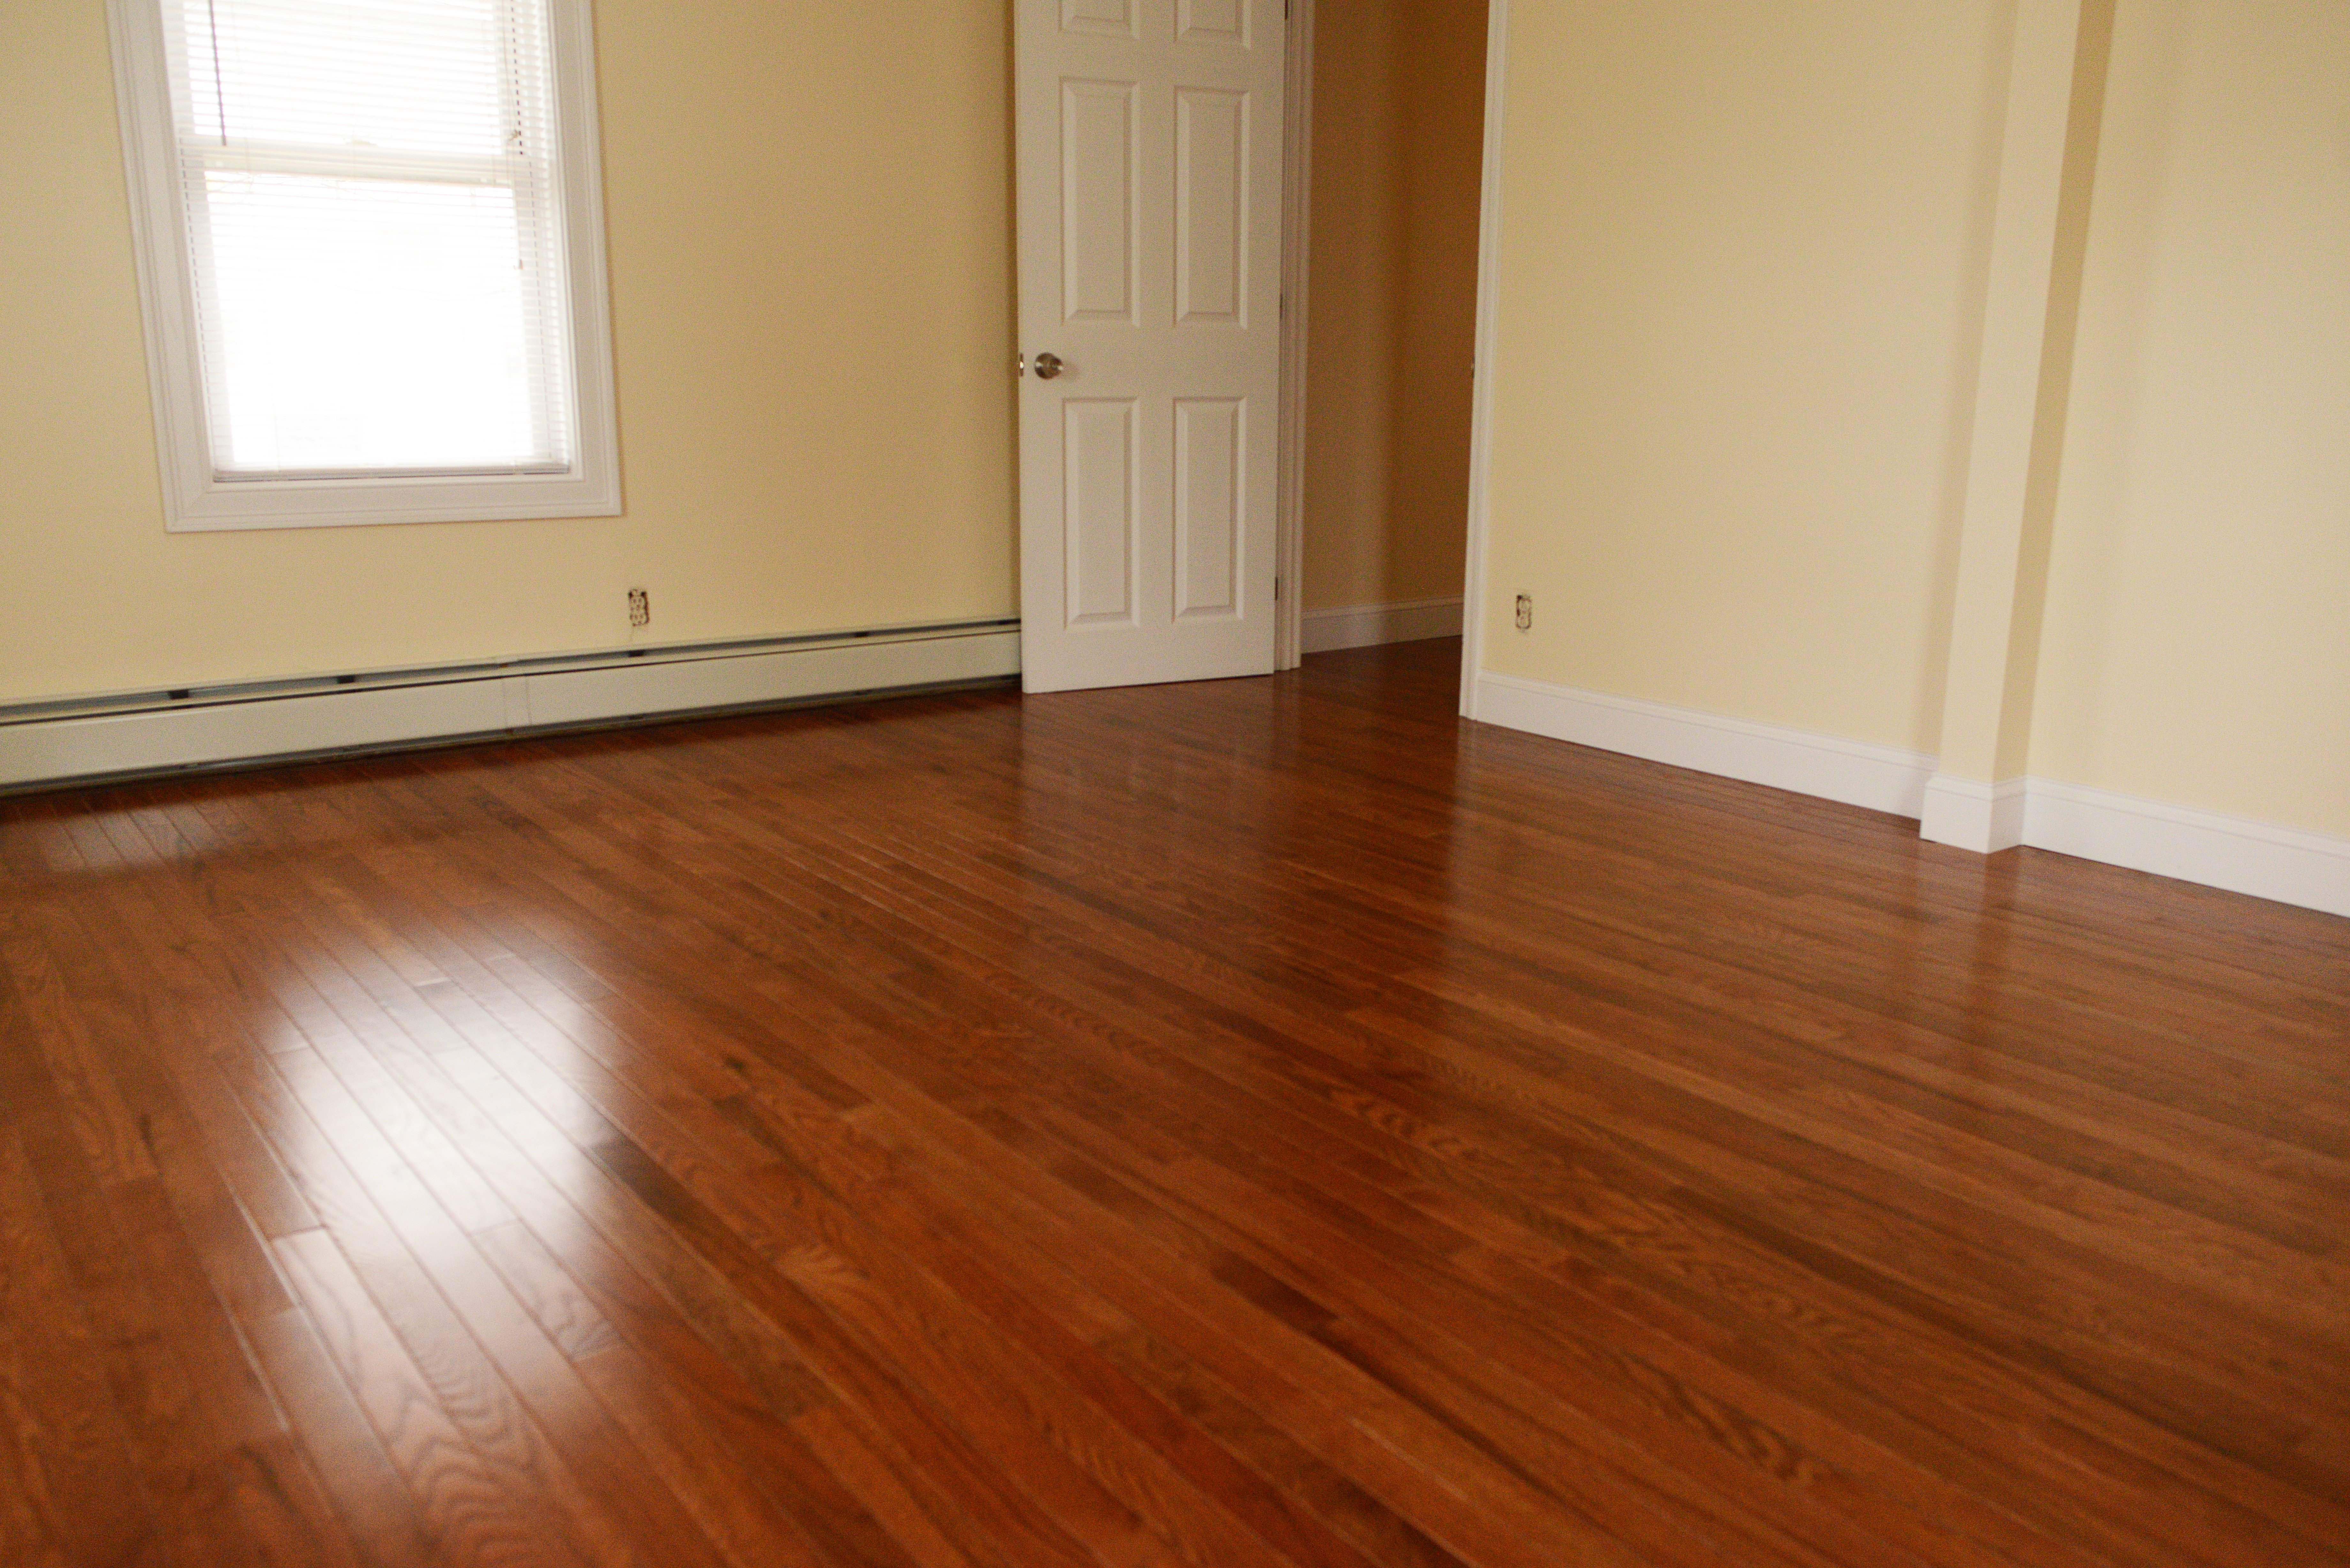 Refinishing hardwood floors manchester nh carpet review for Redoing hardwood floors